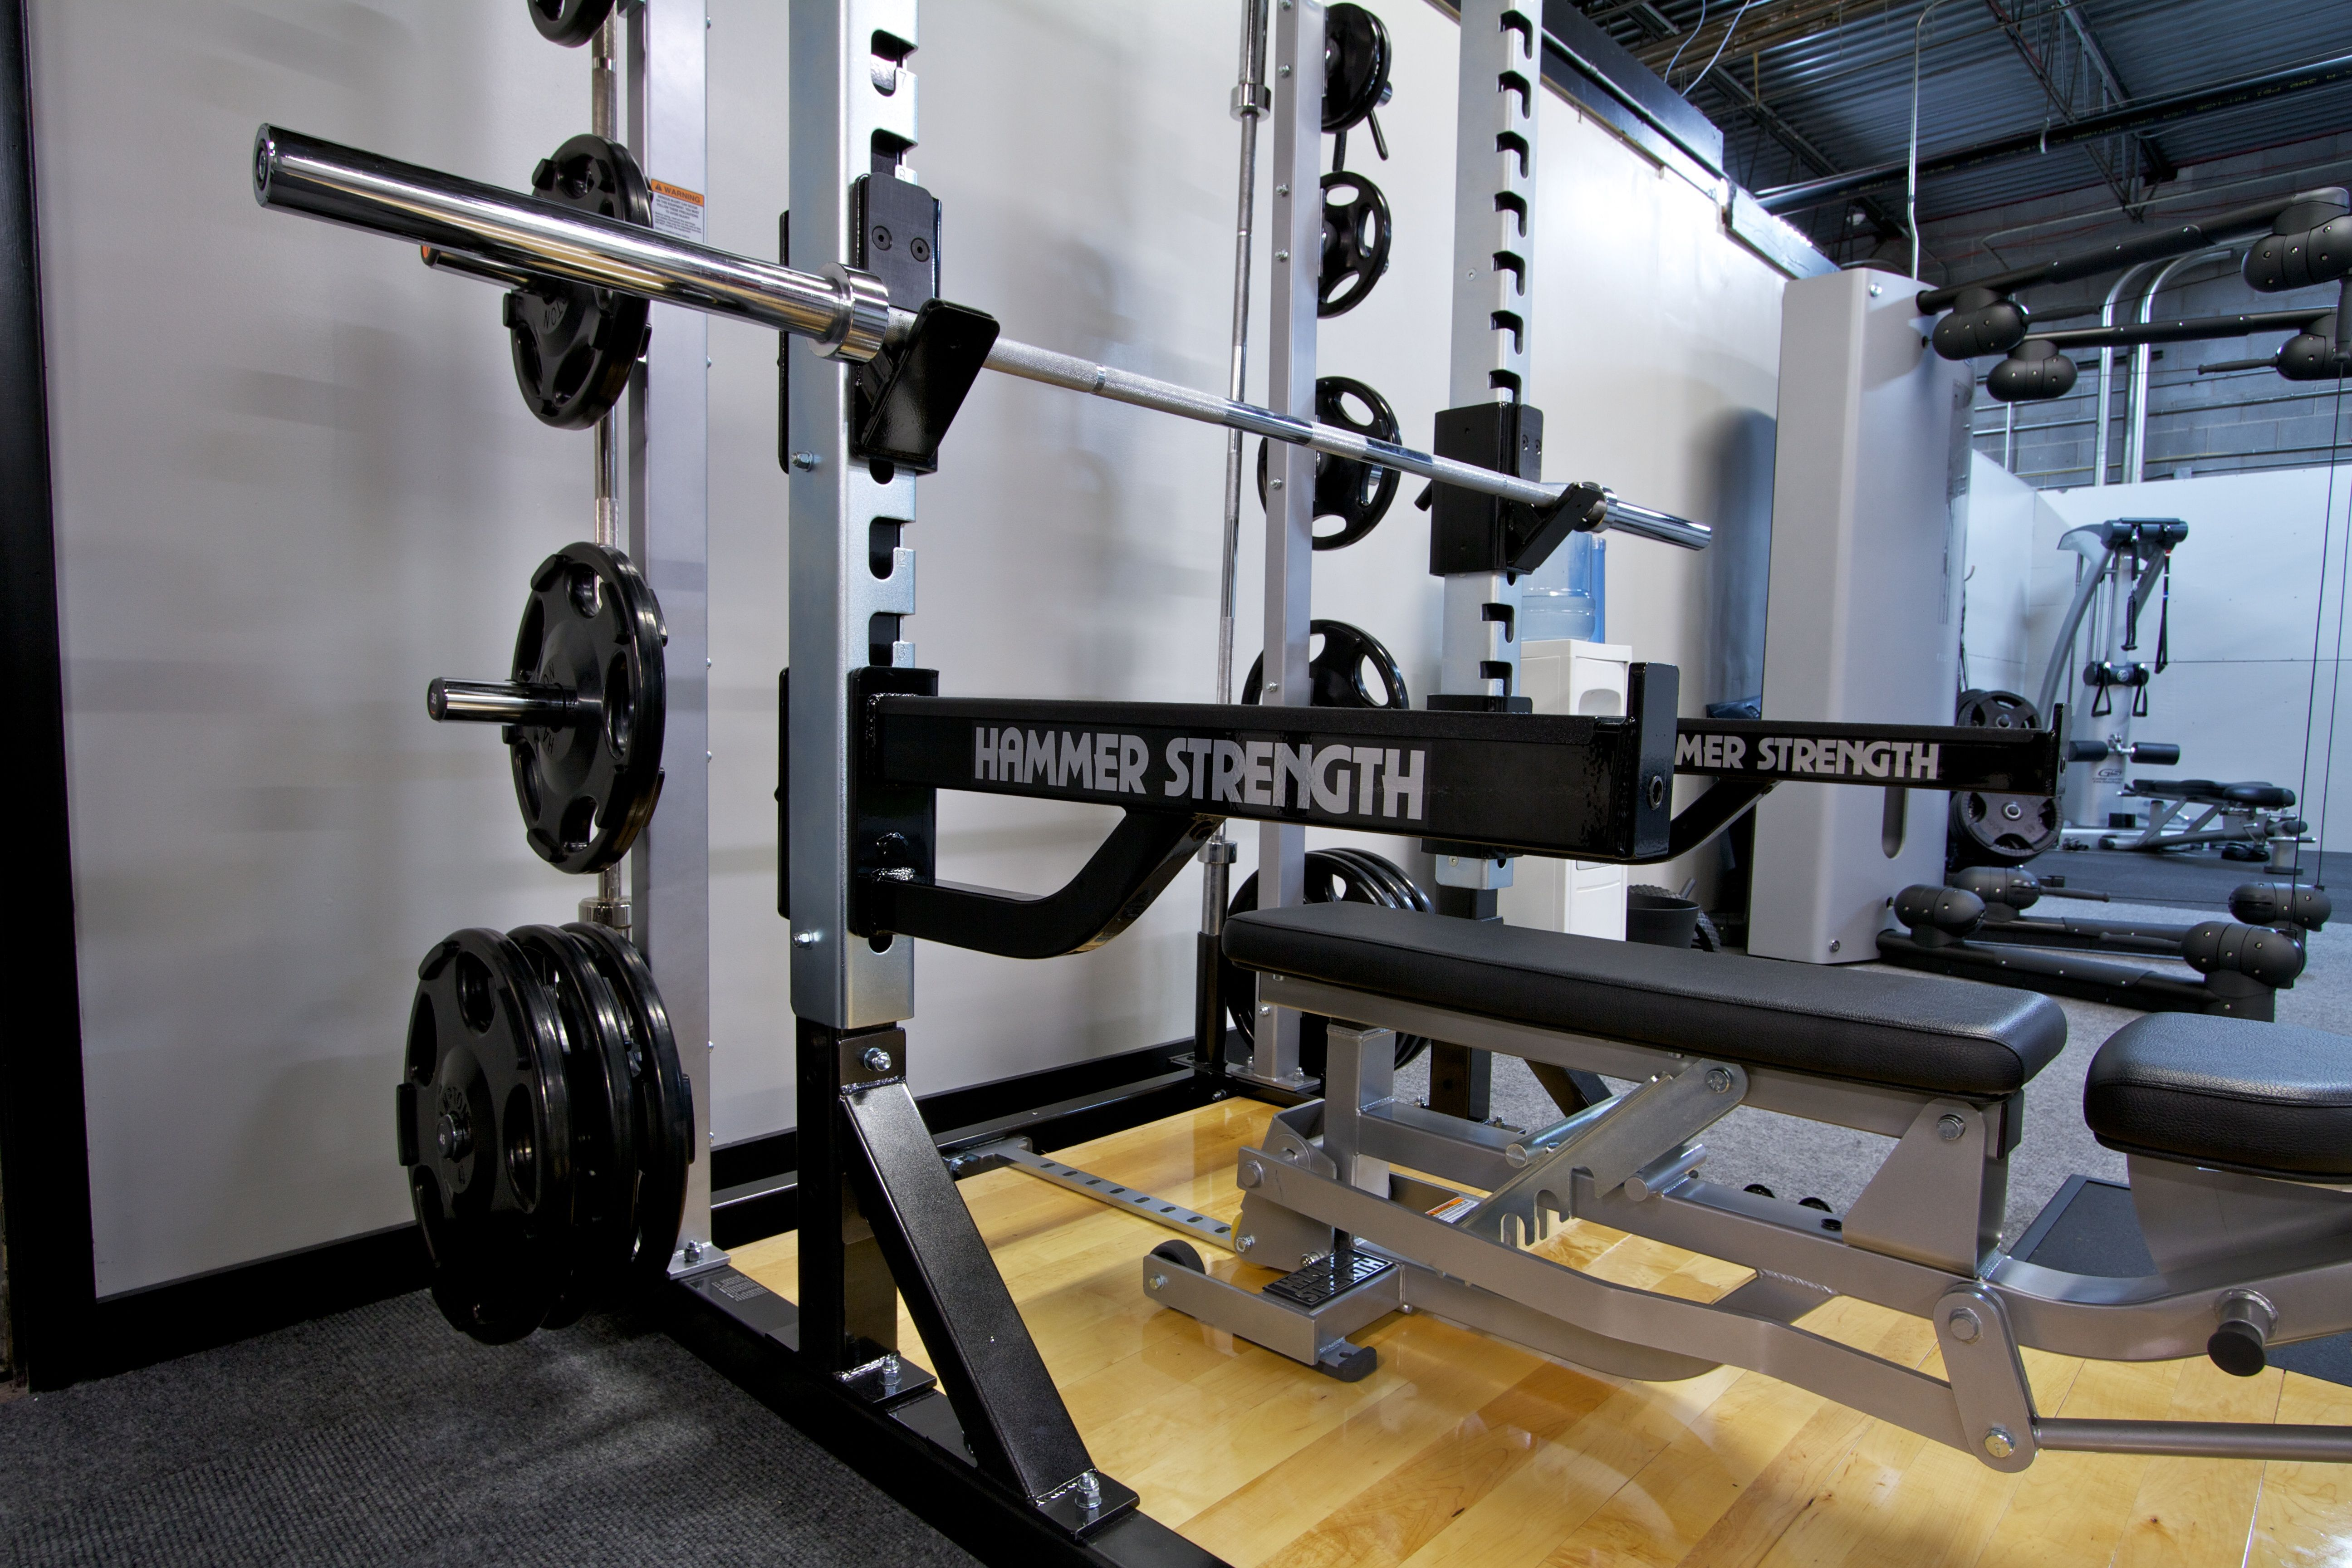 hammer strength at enhance fitness studio fitness pinterest power rack body workouts and. Black Bedroom Furniture Sets. Home Design Ideas